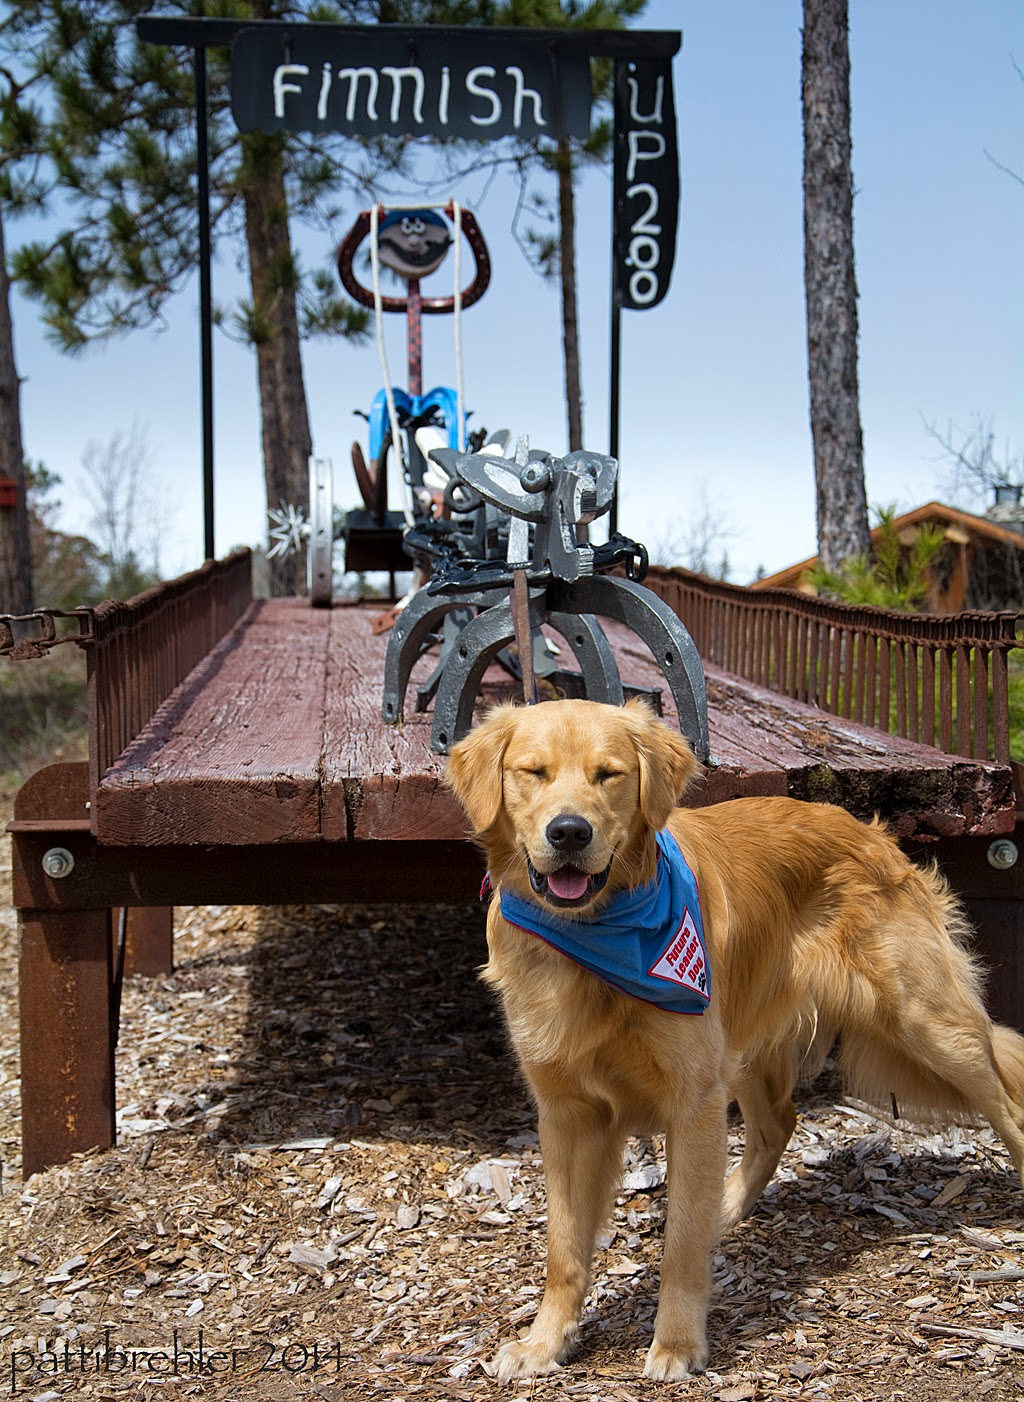 "The golden retriever stands in front of a metal sculpture of a dog sled team, mounted on a wood ramp. His leash is tied to the lead metal dog and his eyes are squinting. There is a metal man on the sled behind the metal dogs. A black metal sign above the sculpture says ""Finnish"" and on the side it says UP 200."